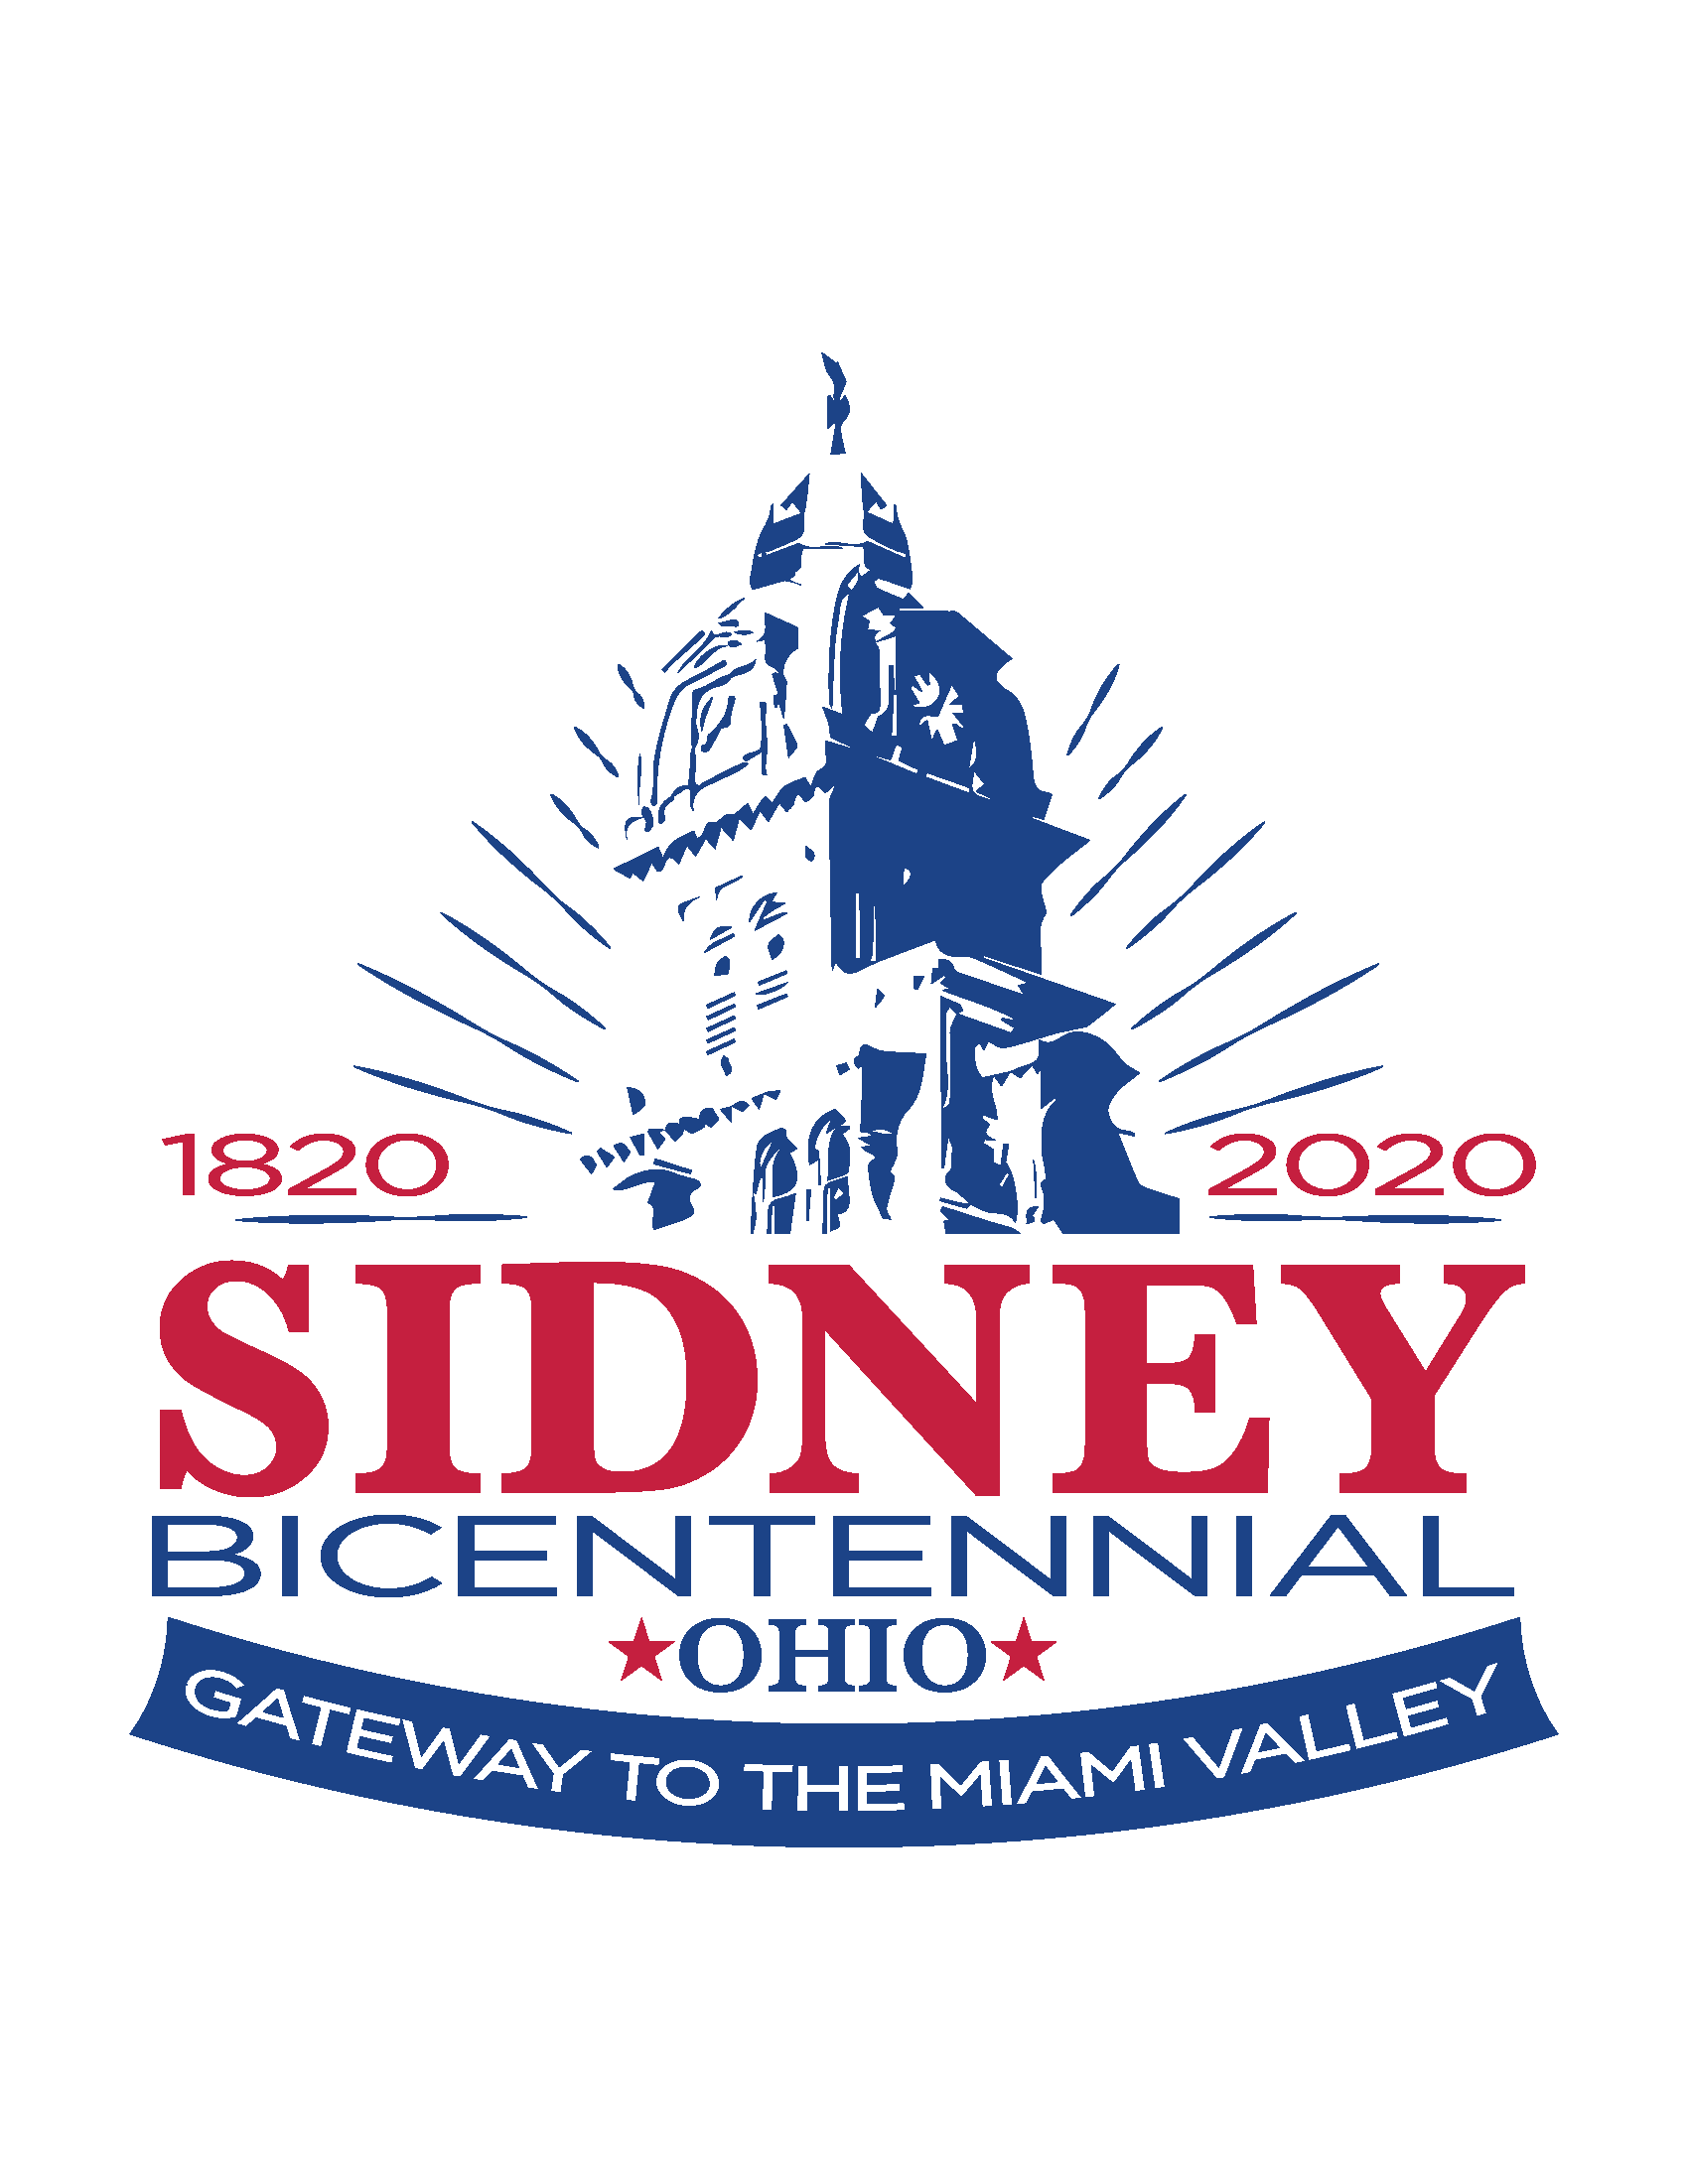 Sidney Bicentennial Logo in Red White and Blue